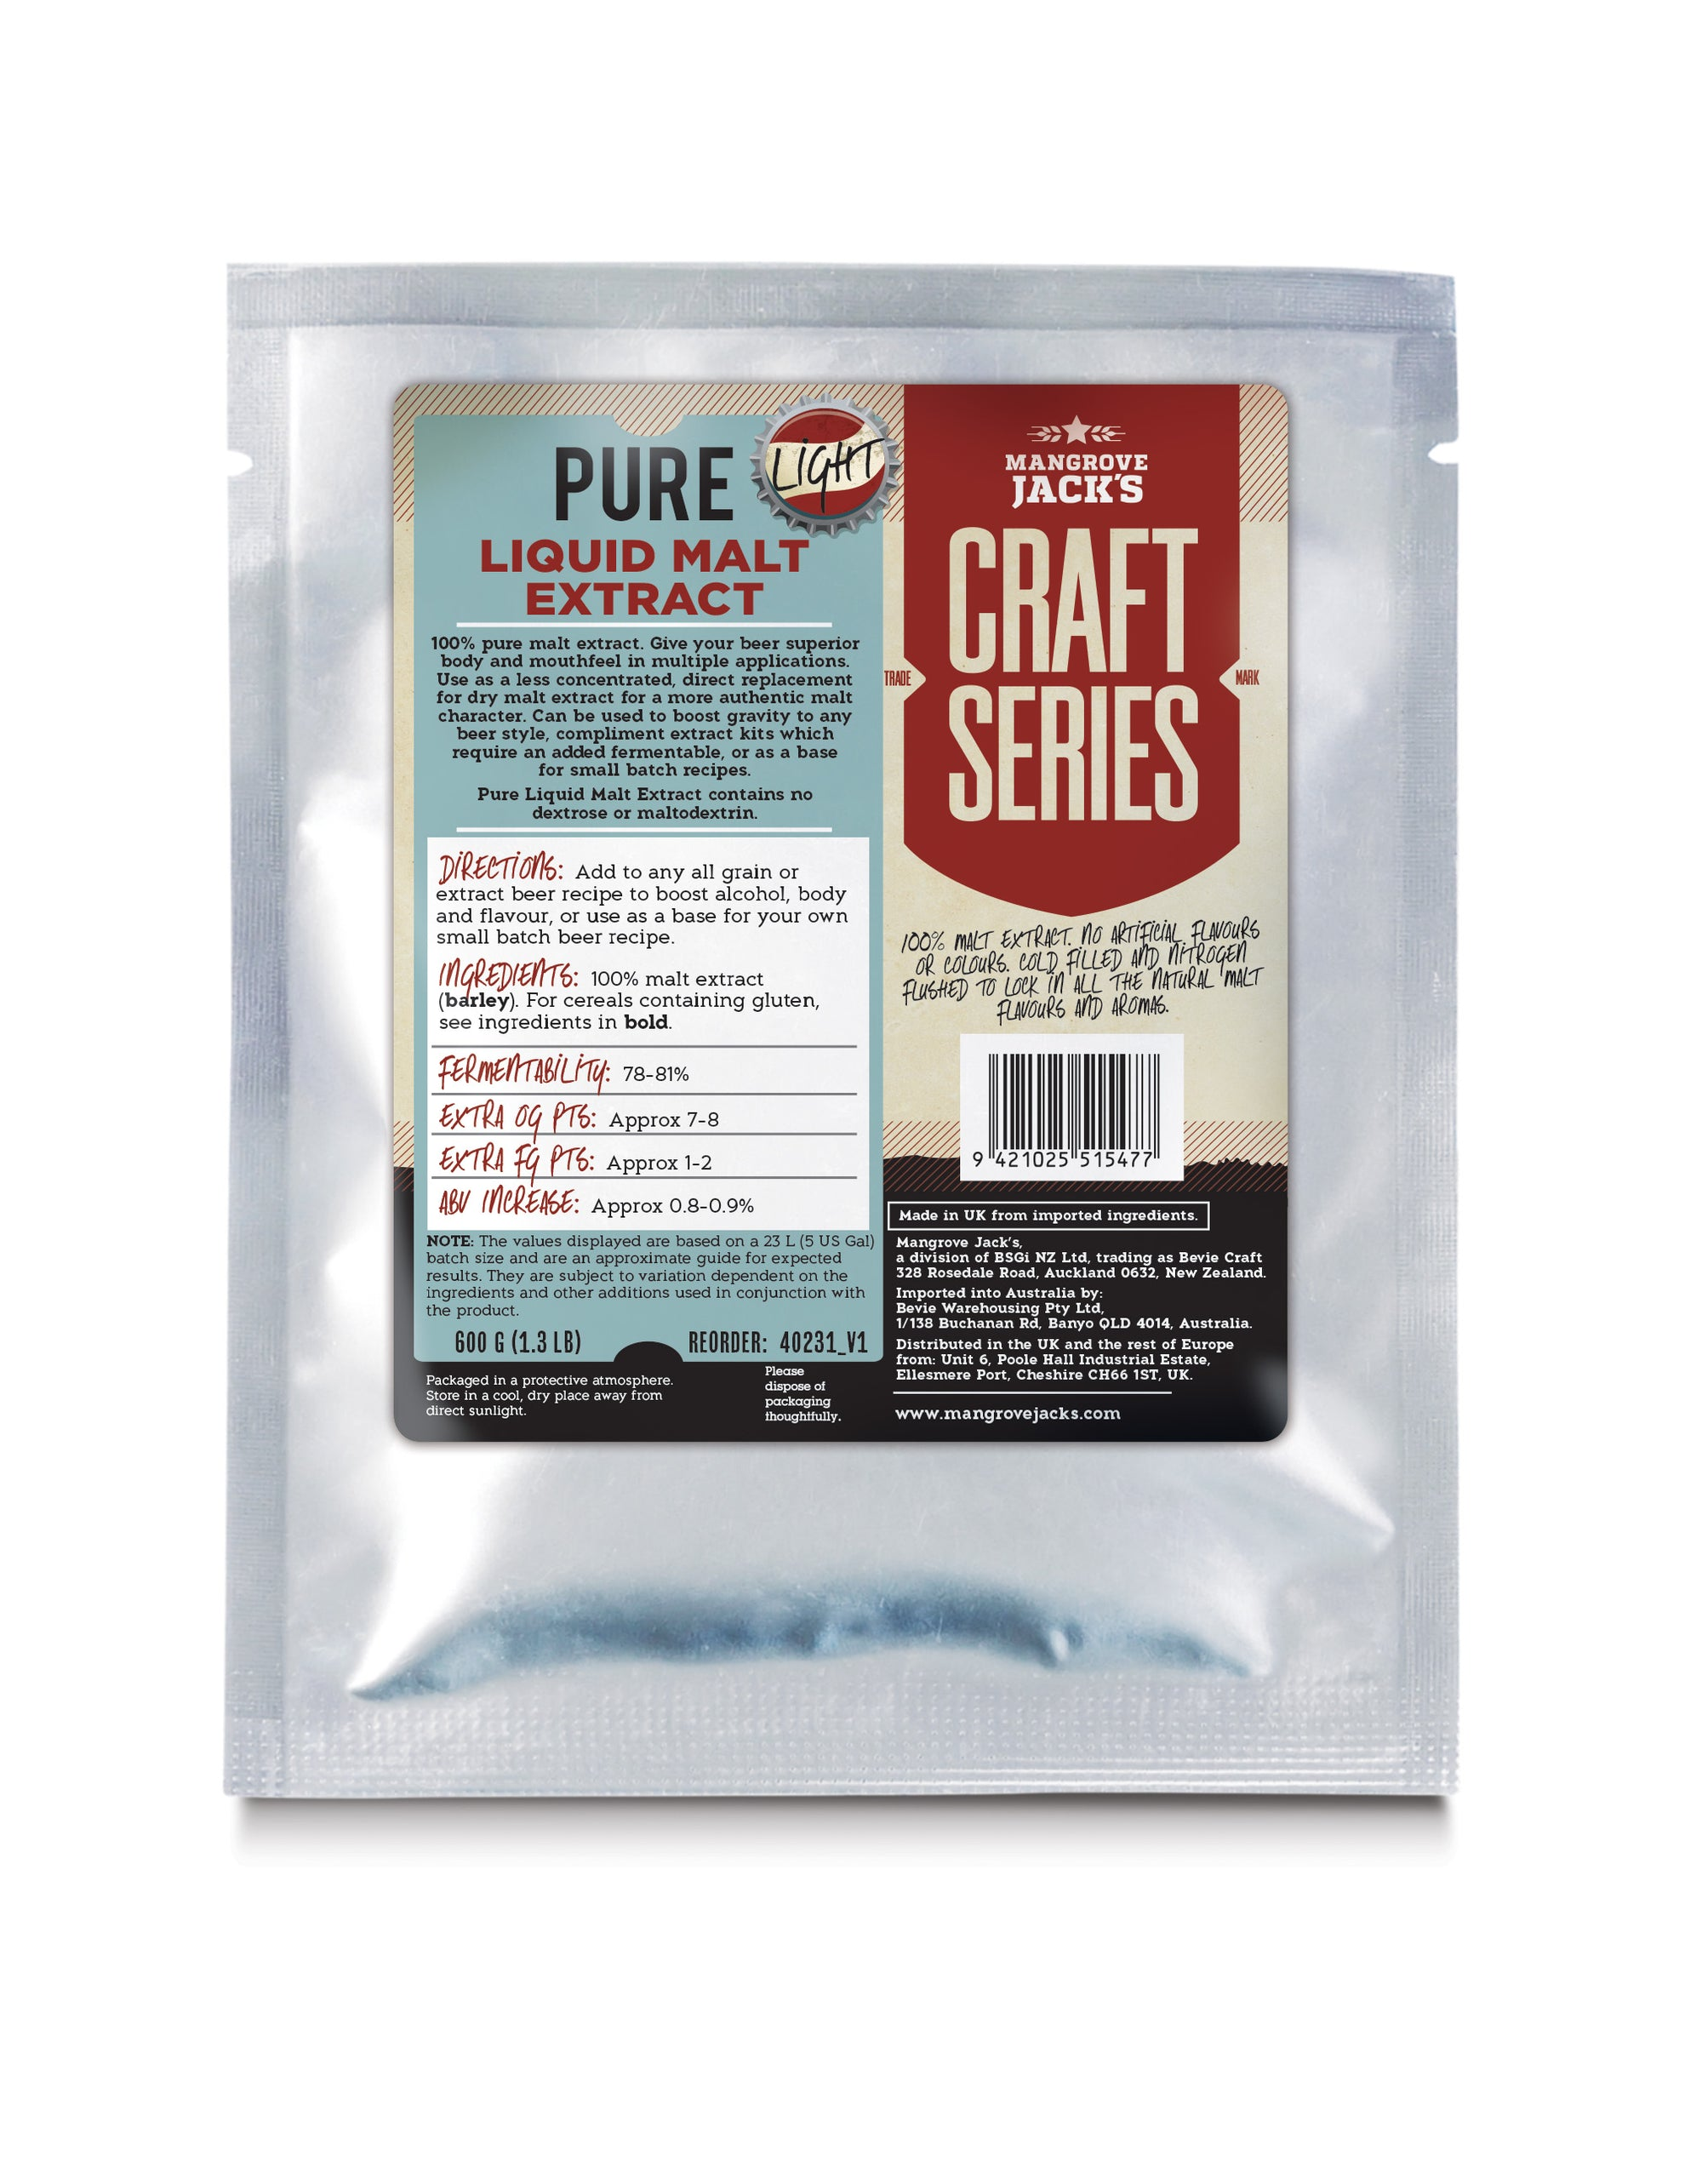 Mangrove Jacks Pure Liquid Malt Extract - Light 600g